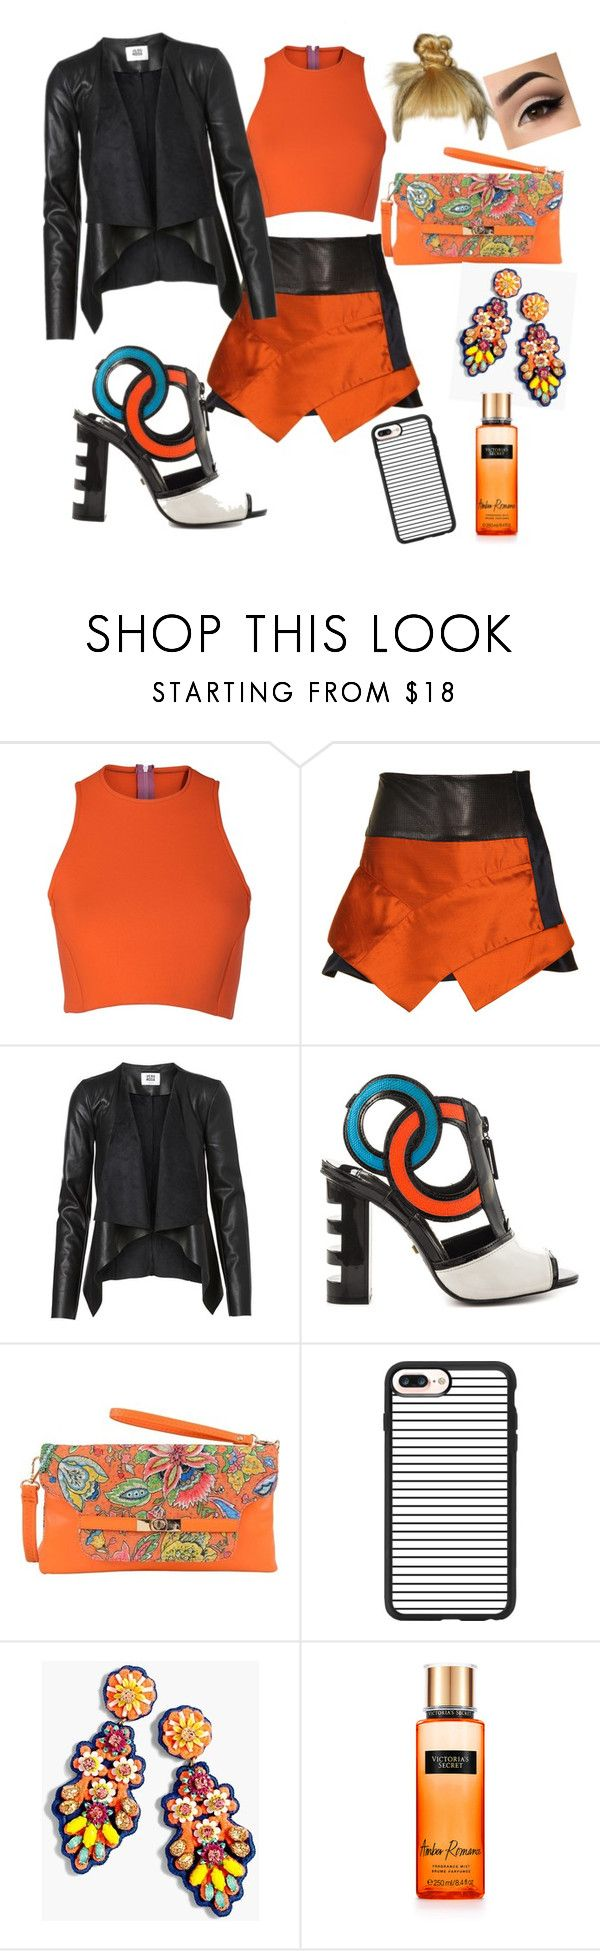 """""""Bad AZZ!!"""" by gigiglow ❤ liked on Polyvore featuring Sydney-Davies, Proenza Schouler, Kat Maconie, Mellow World, Casetify, J.Crew and Victoria's Secret"""